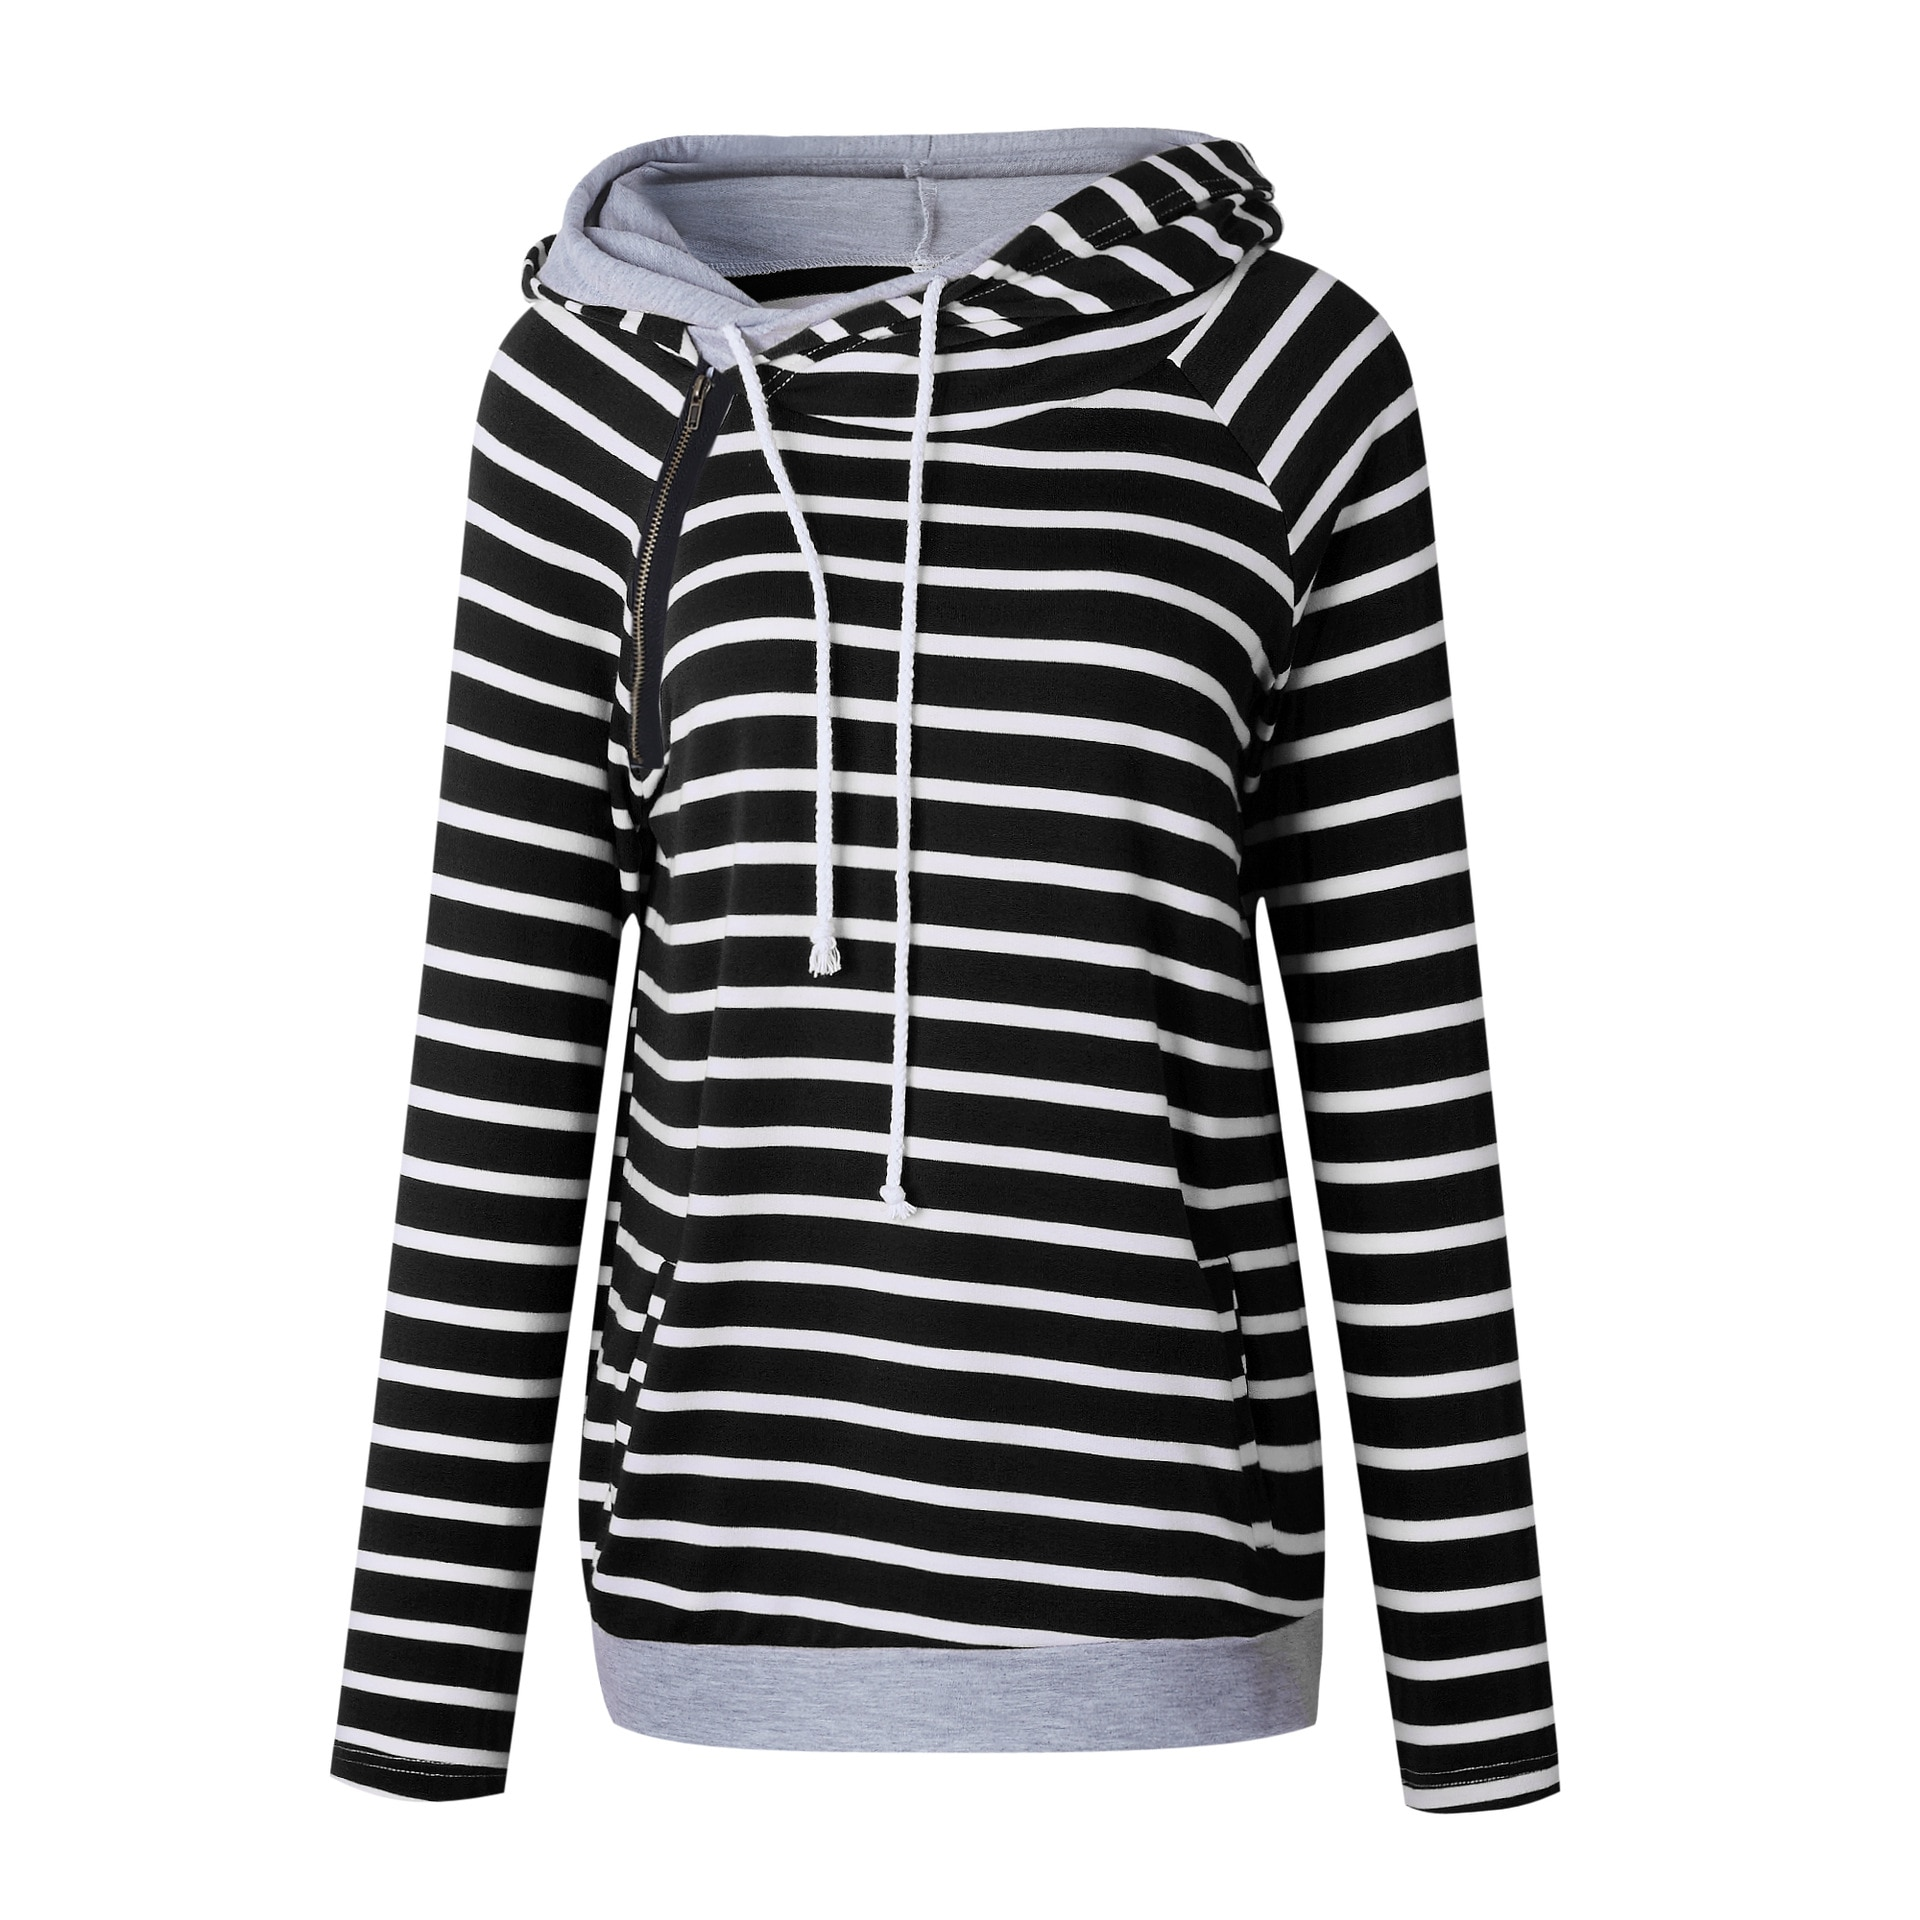 Women's Patchwork Striped Pullover Long Sleeve Hoodie, Tops With Pockets, Hooded Sweatshirt 36